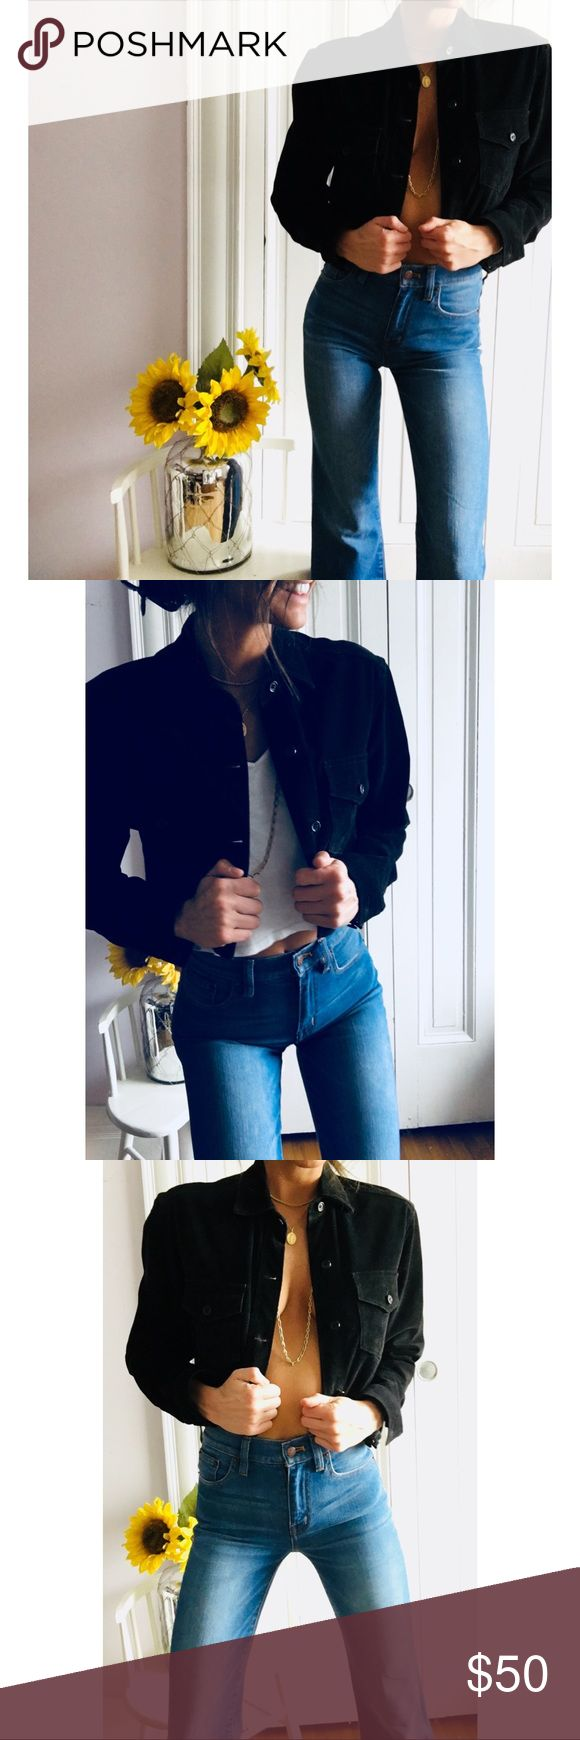 French Connection Full Black Suede Coat! So cute! Amazing cropped completely leather suede French Connection jacket! I love this coat & am so sad to see it leaving my closet! Goes adorable to country concerts, festivals, & even over sweaters in the winter! Great addition to any closet!   ———-  #frenchconnection #suede #leather #black #cowgirl #cropped #jacket #coat #outerwear French Connection Jackets & Coats